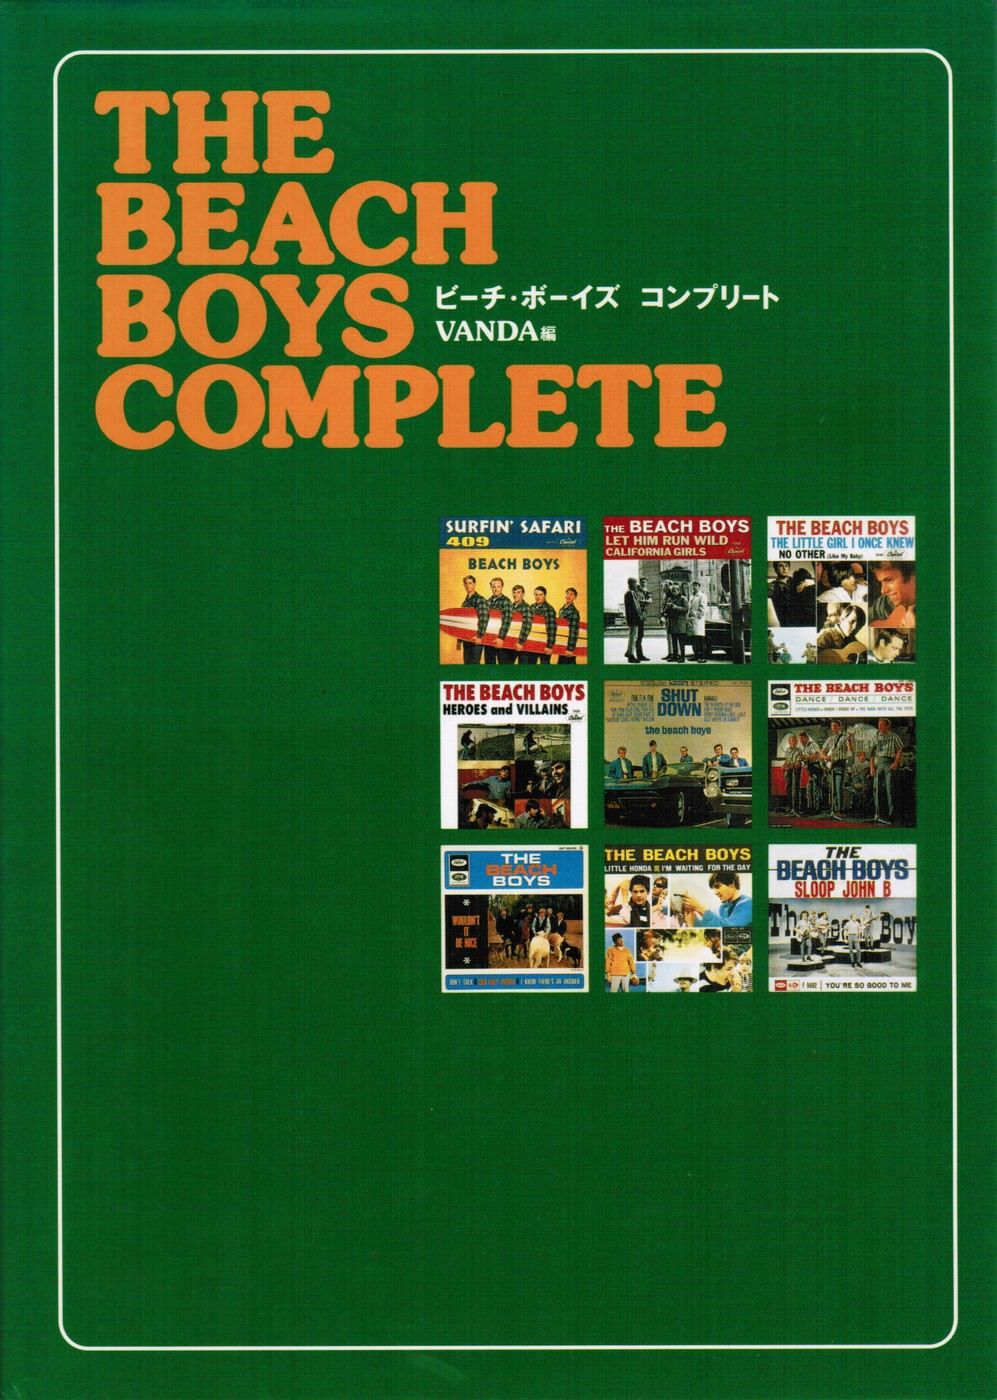 The Beach Boys Complete (in Japanese) cover